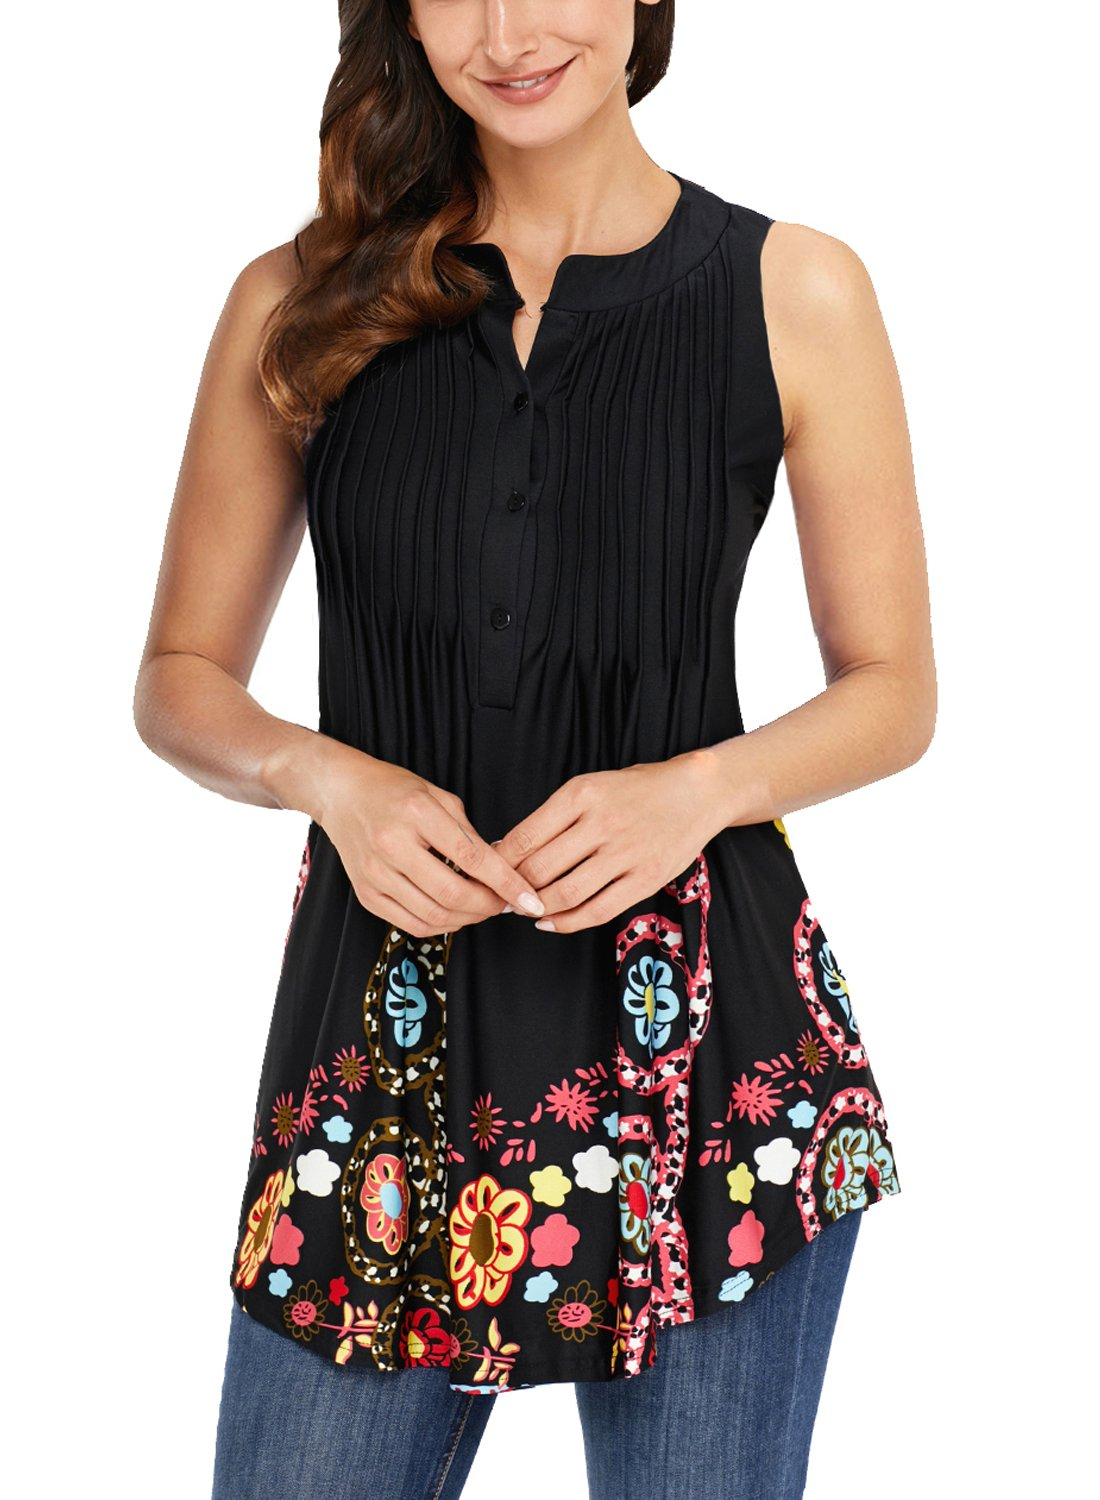 Dokotoo Womens Tanks Tops BlouseFashion Summer Casual Sleeveless Button up Floral Print Swing Flare Tanks Tops and Blouses Shirt Medium